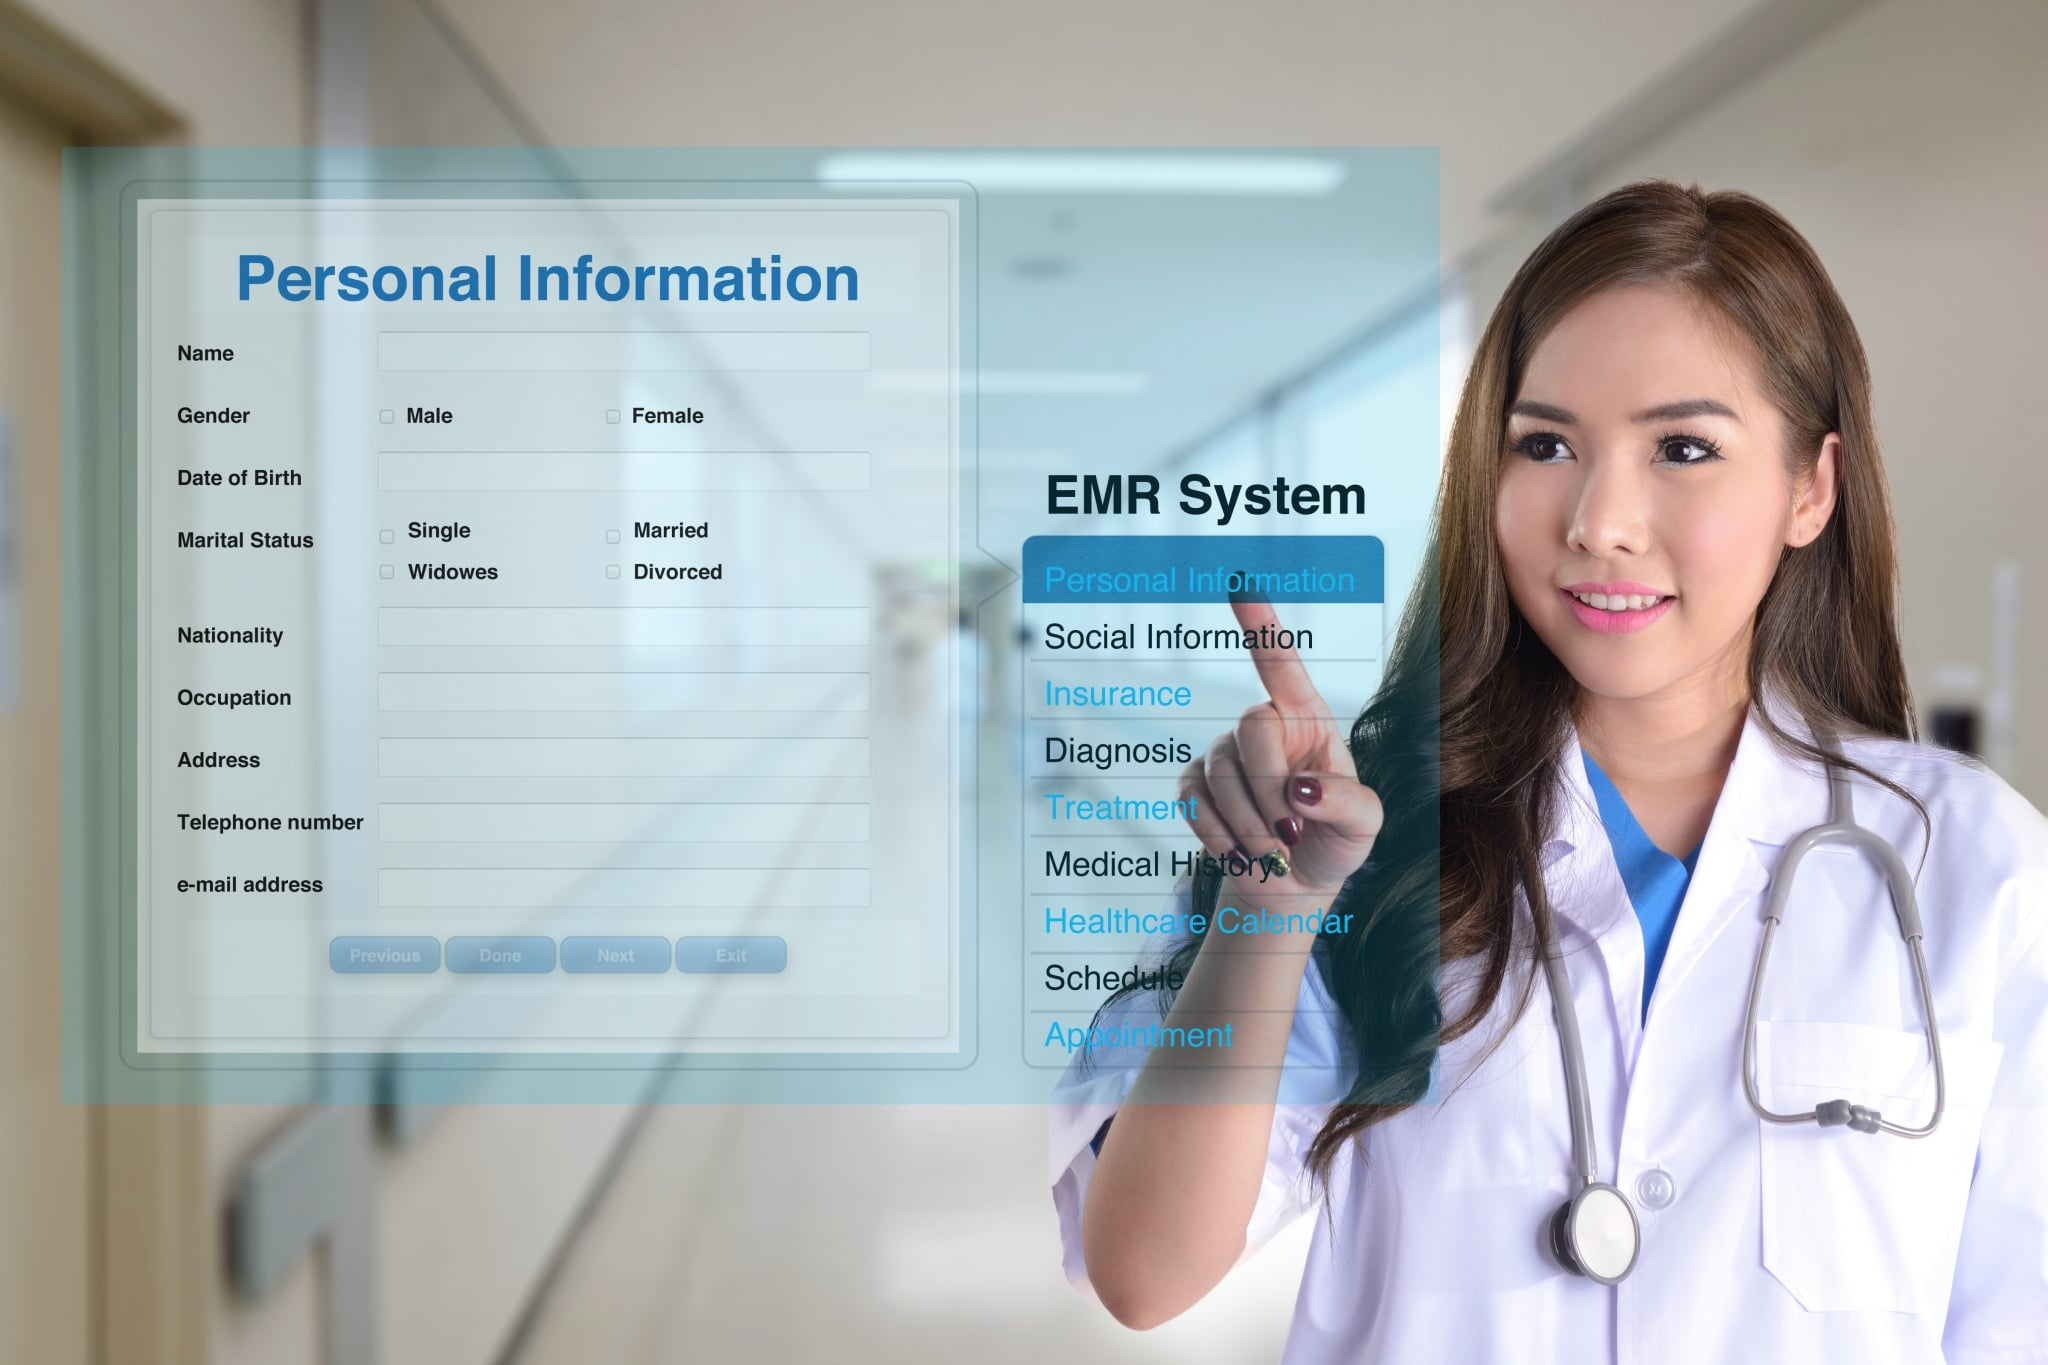 Medical Office Assistant using a virtual system